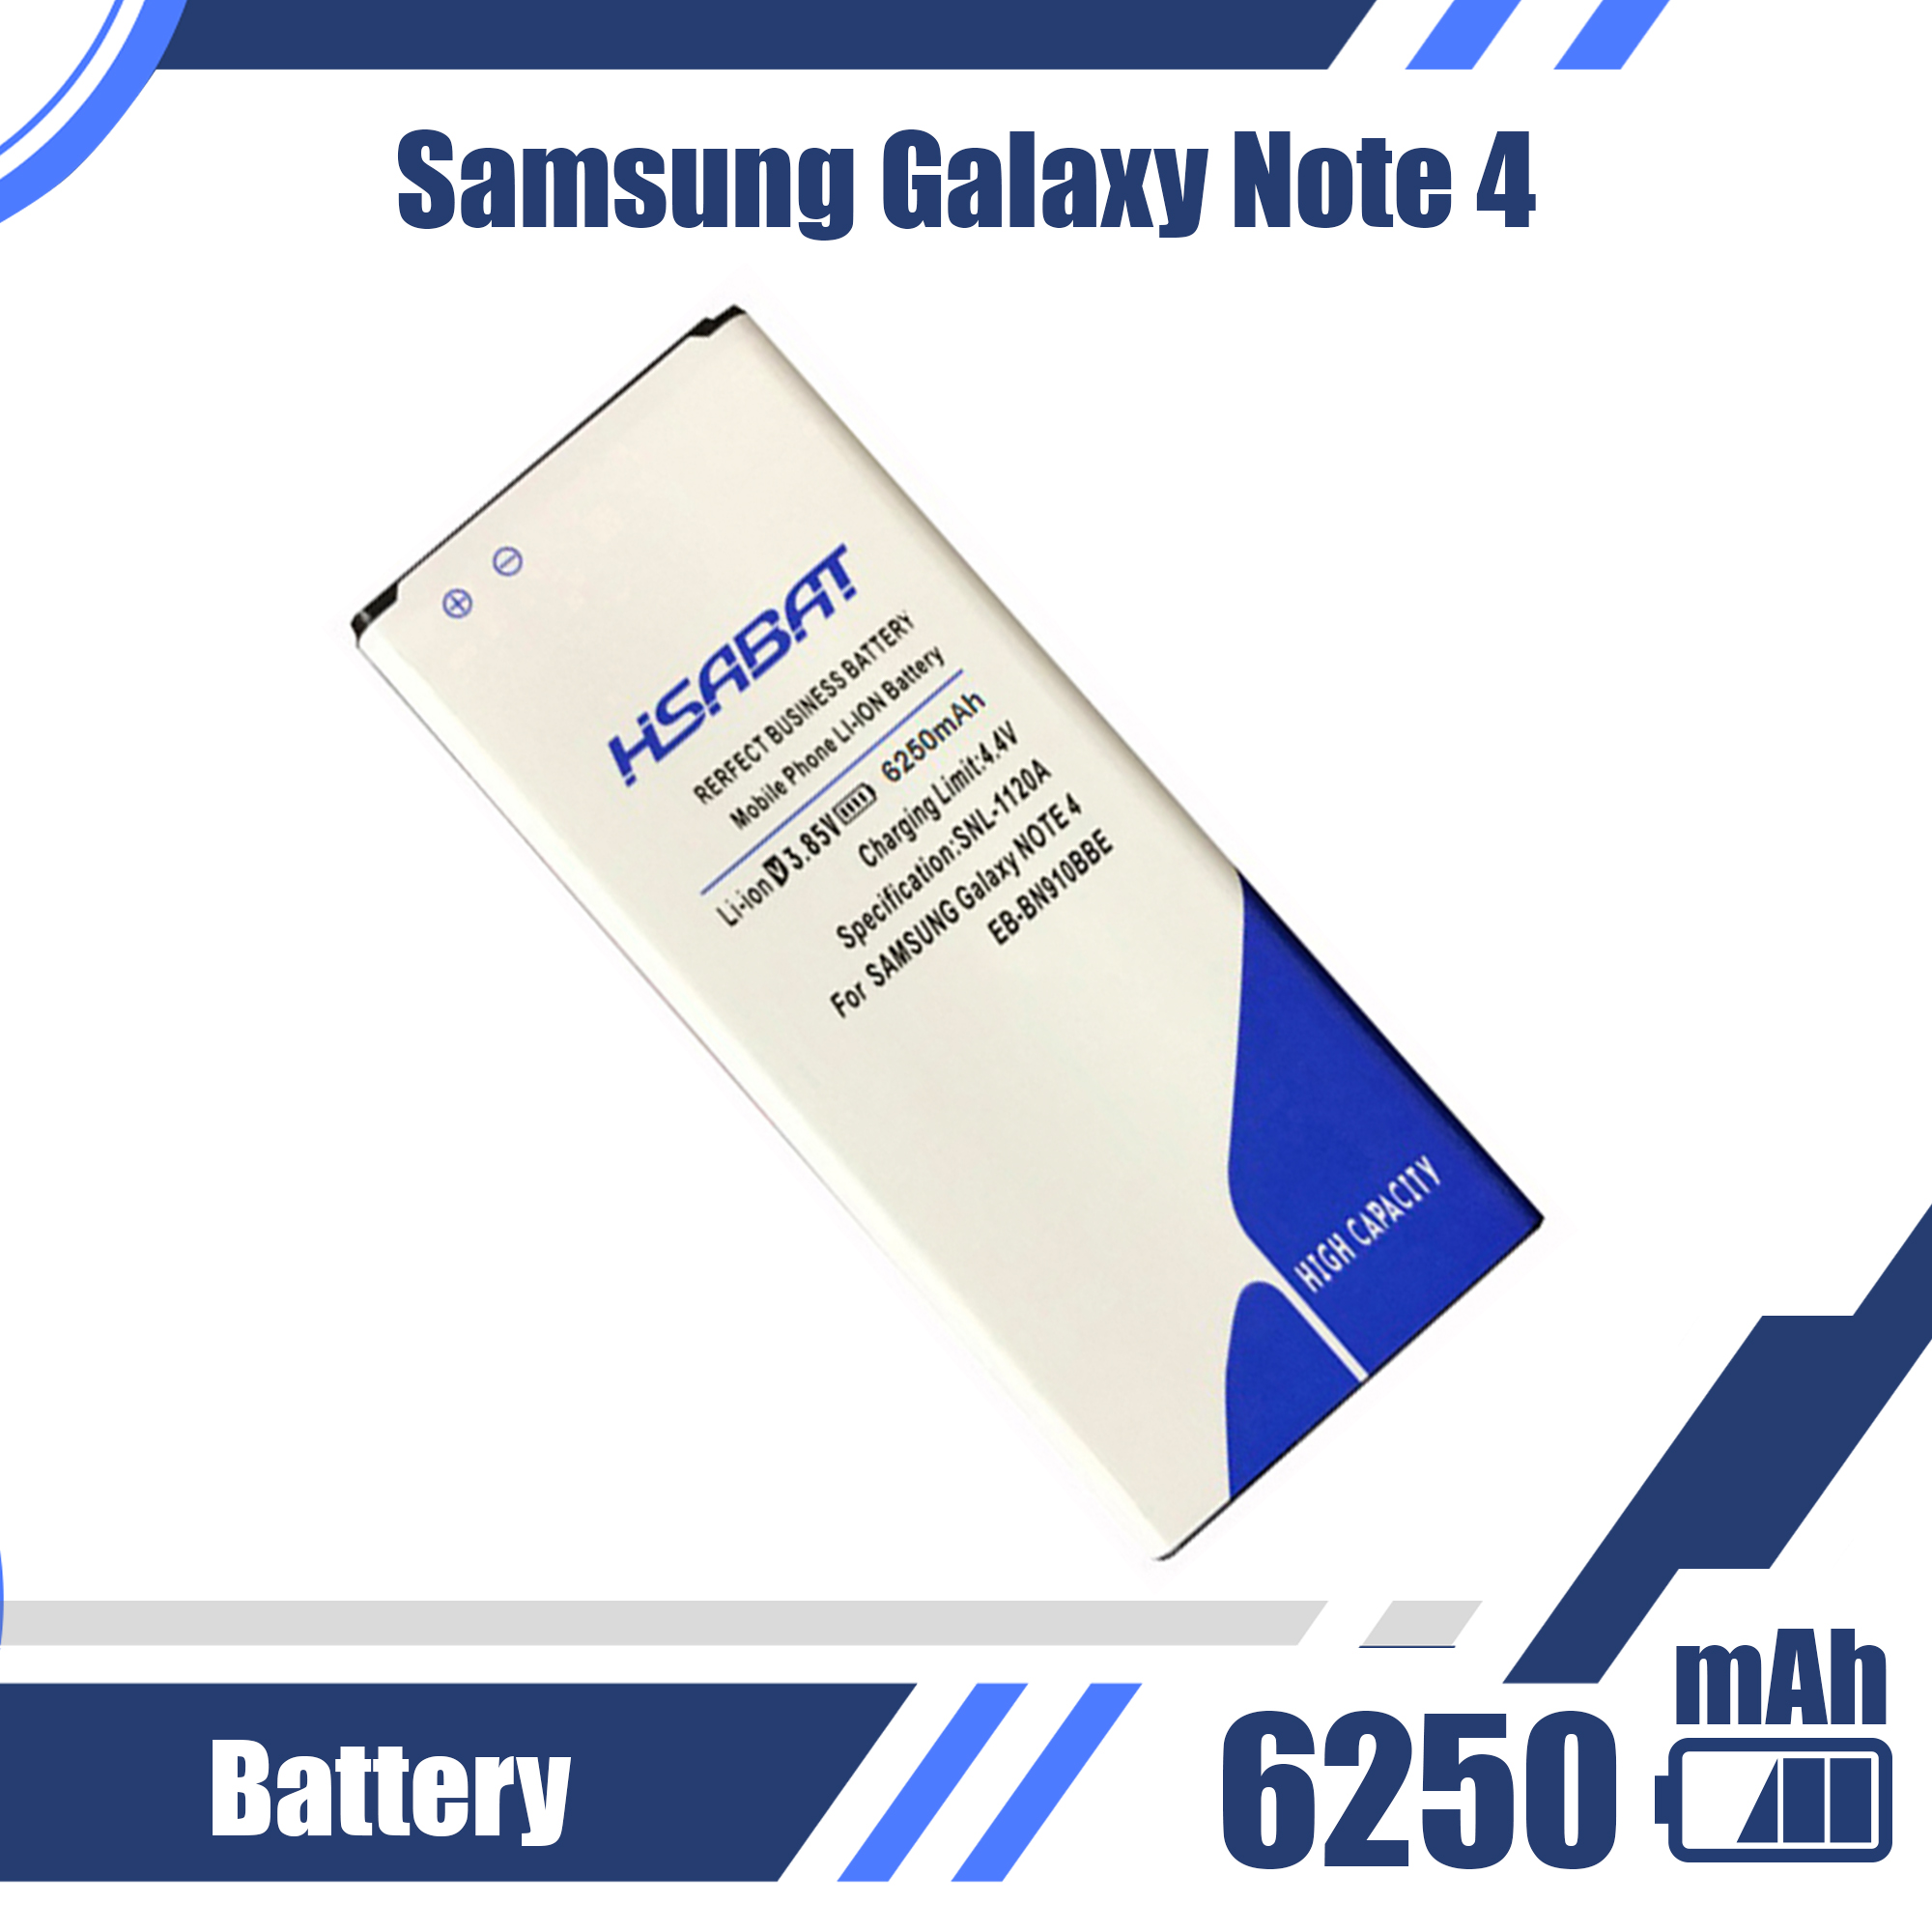 6250mAh EB-BN910BBE Battery For Samsung Galaxy Note 4 Note4 N910H N910A N910C N910F N910FQ N910X N910W N910V N910P N910T